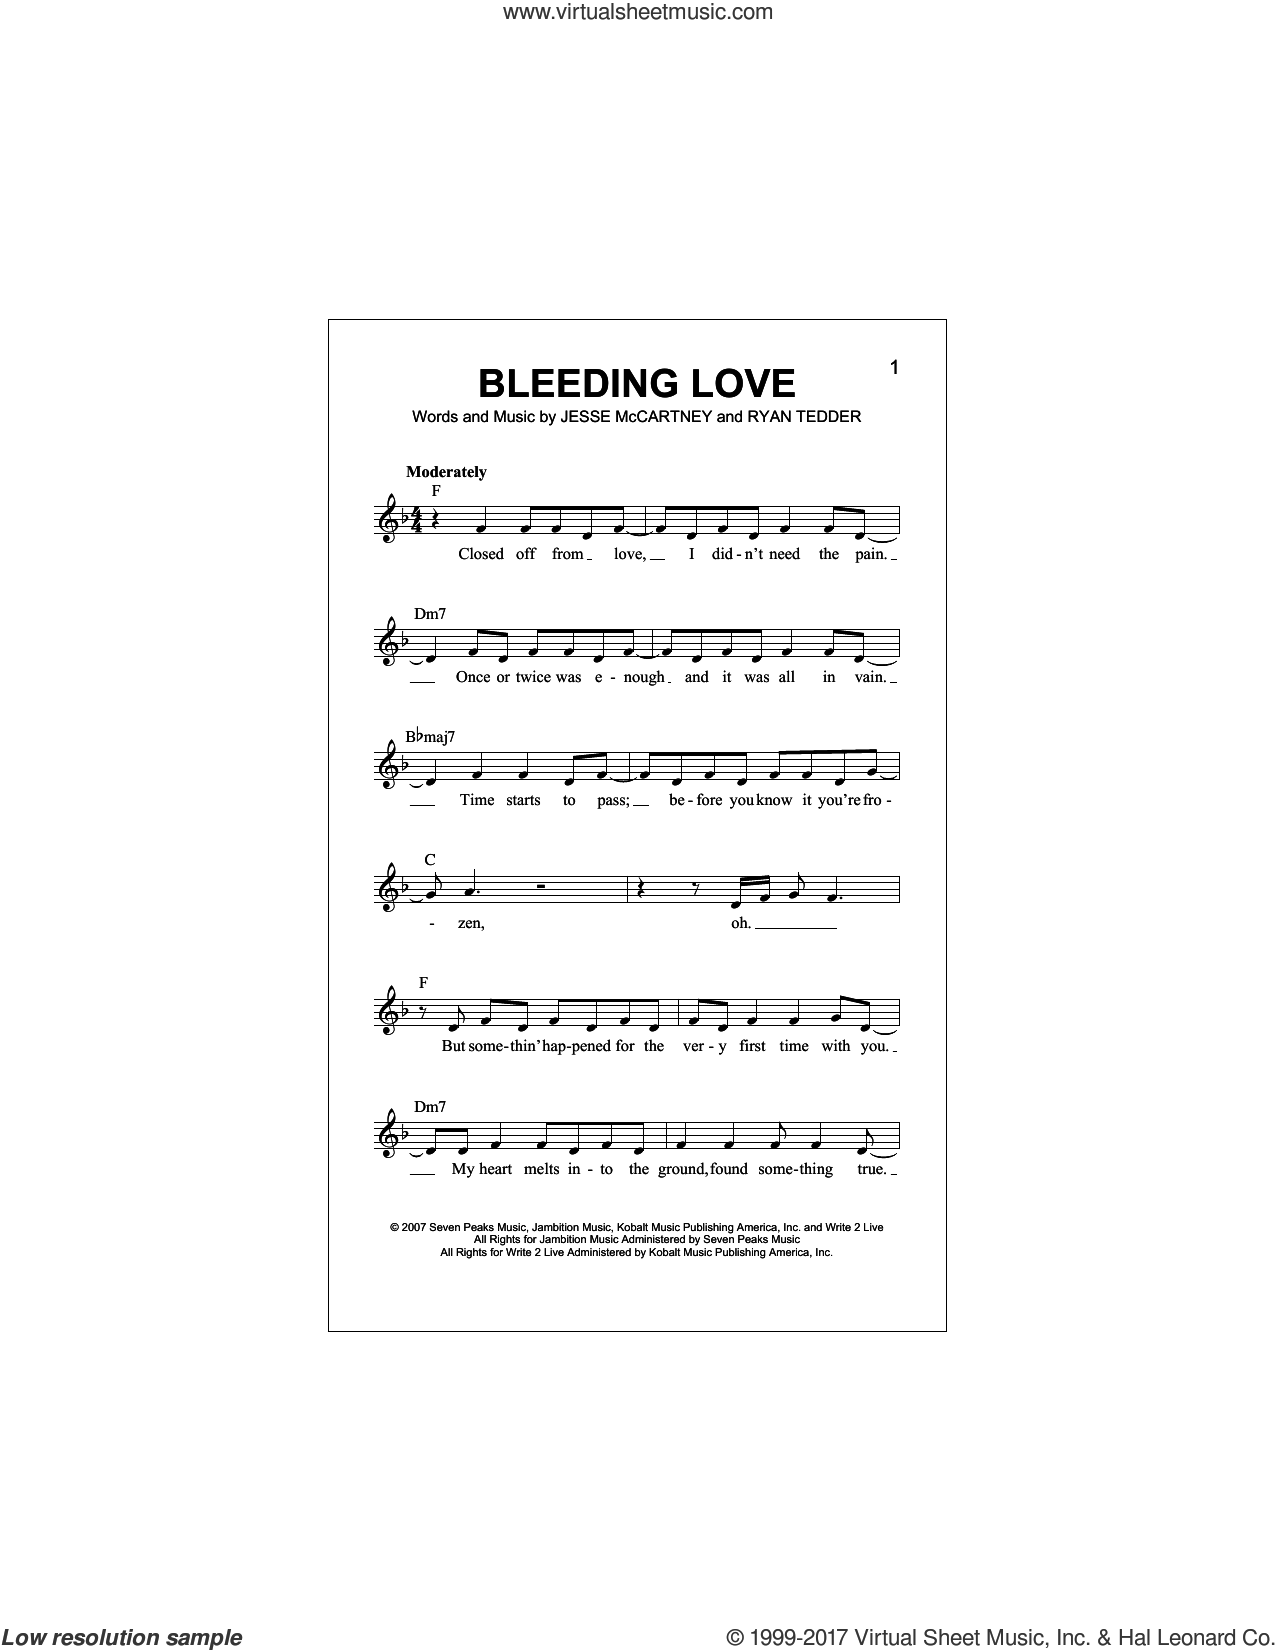 Bleeding Love sheet music for voice and other instruments (fake book) by Leona Lewis, Jesse McCartney and Ryan Tedder, intermediate